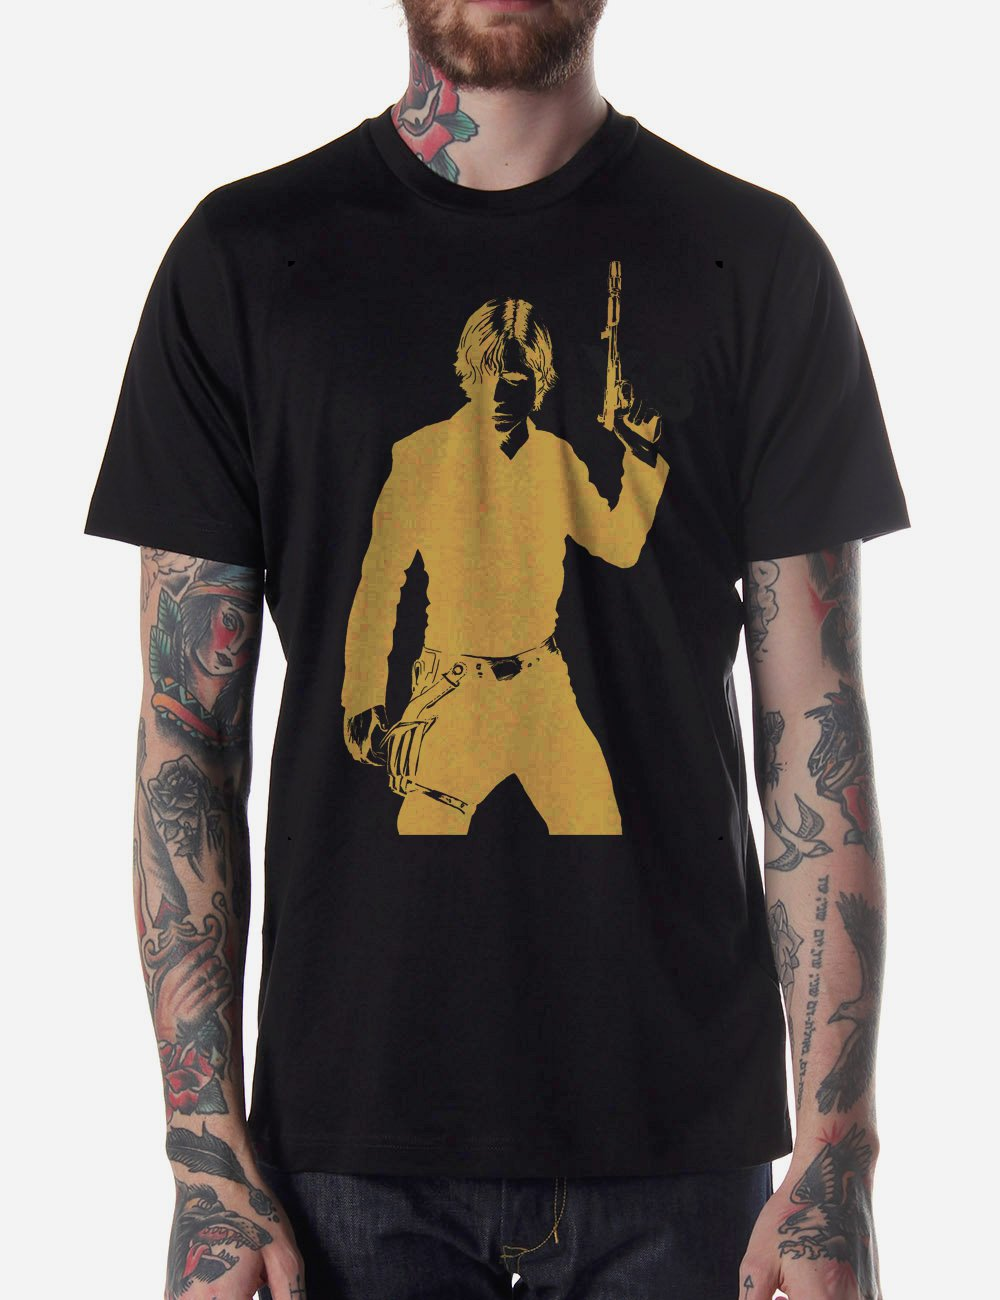 Black Men Tshirt Luke Skywalker Black Tshirt For Men